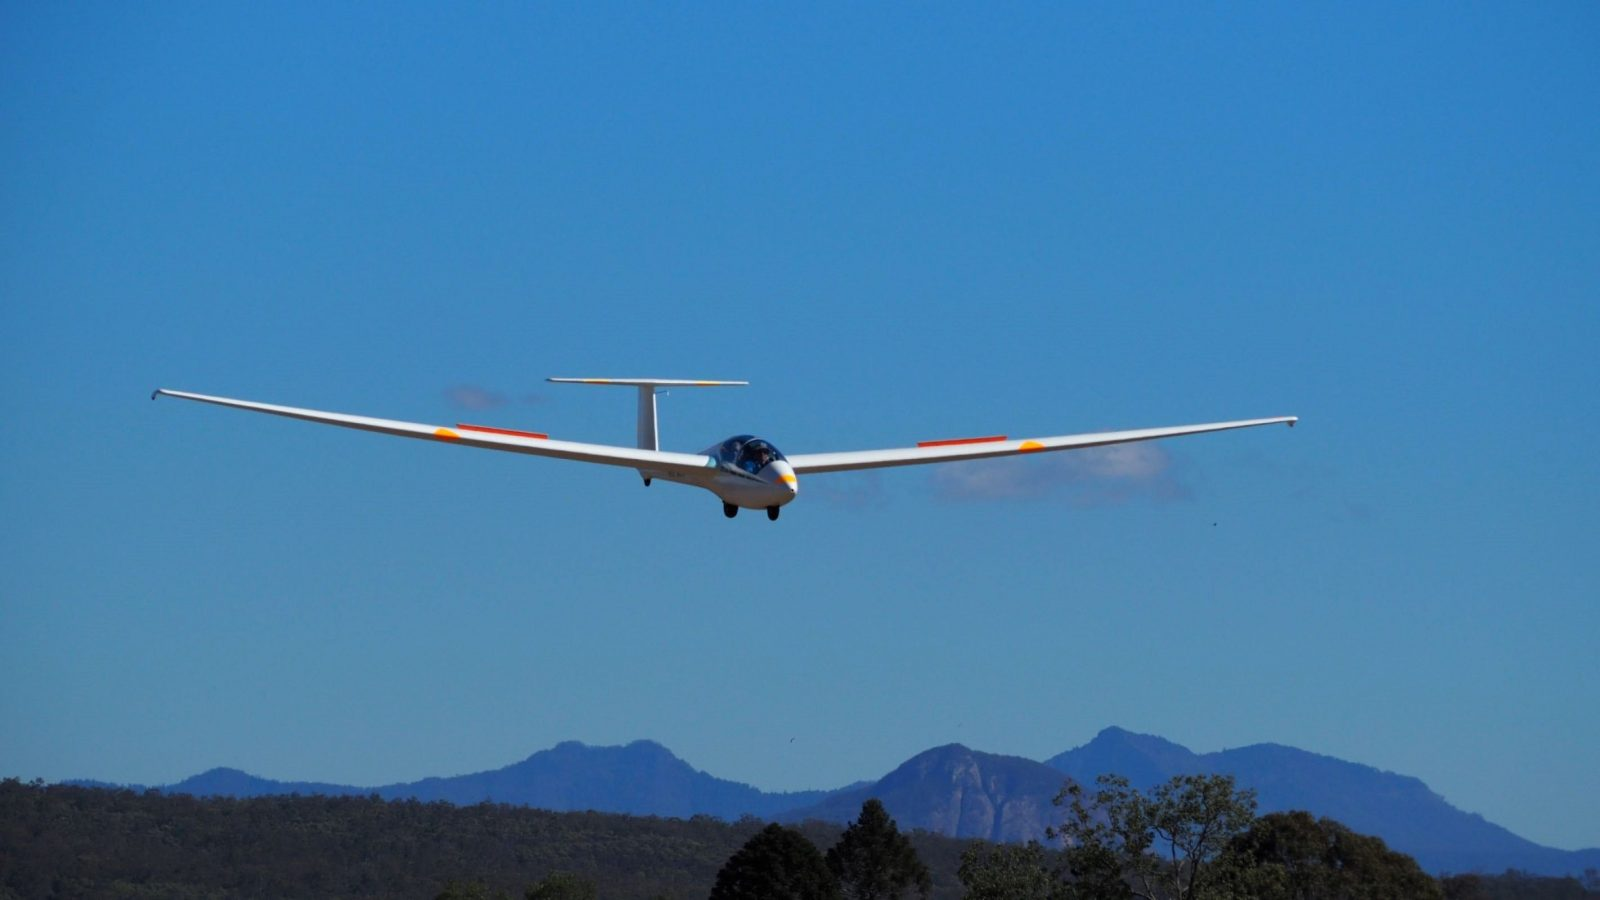 BoonaBoonag Gliding Club offers amazing Air Experience Flights over the Beautiful Scenic Rh Gliding